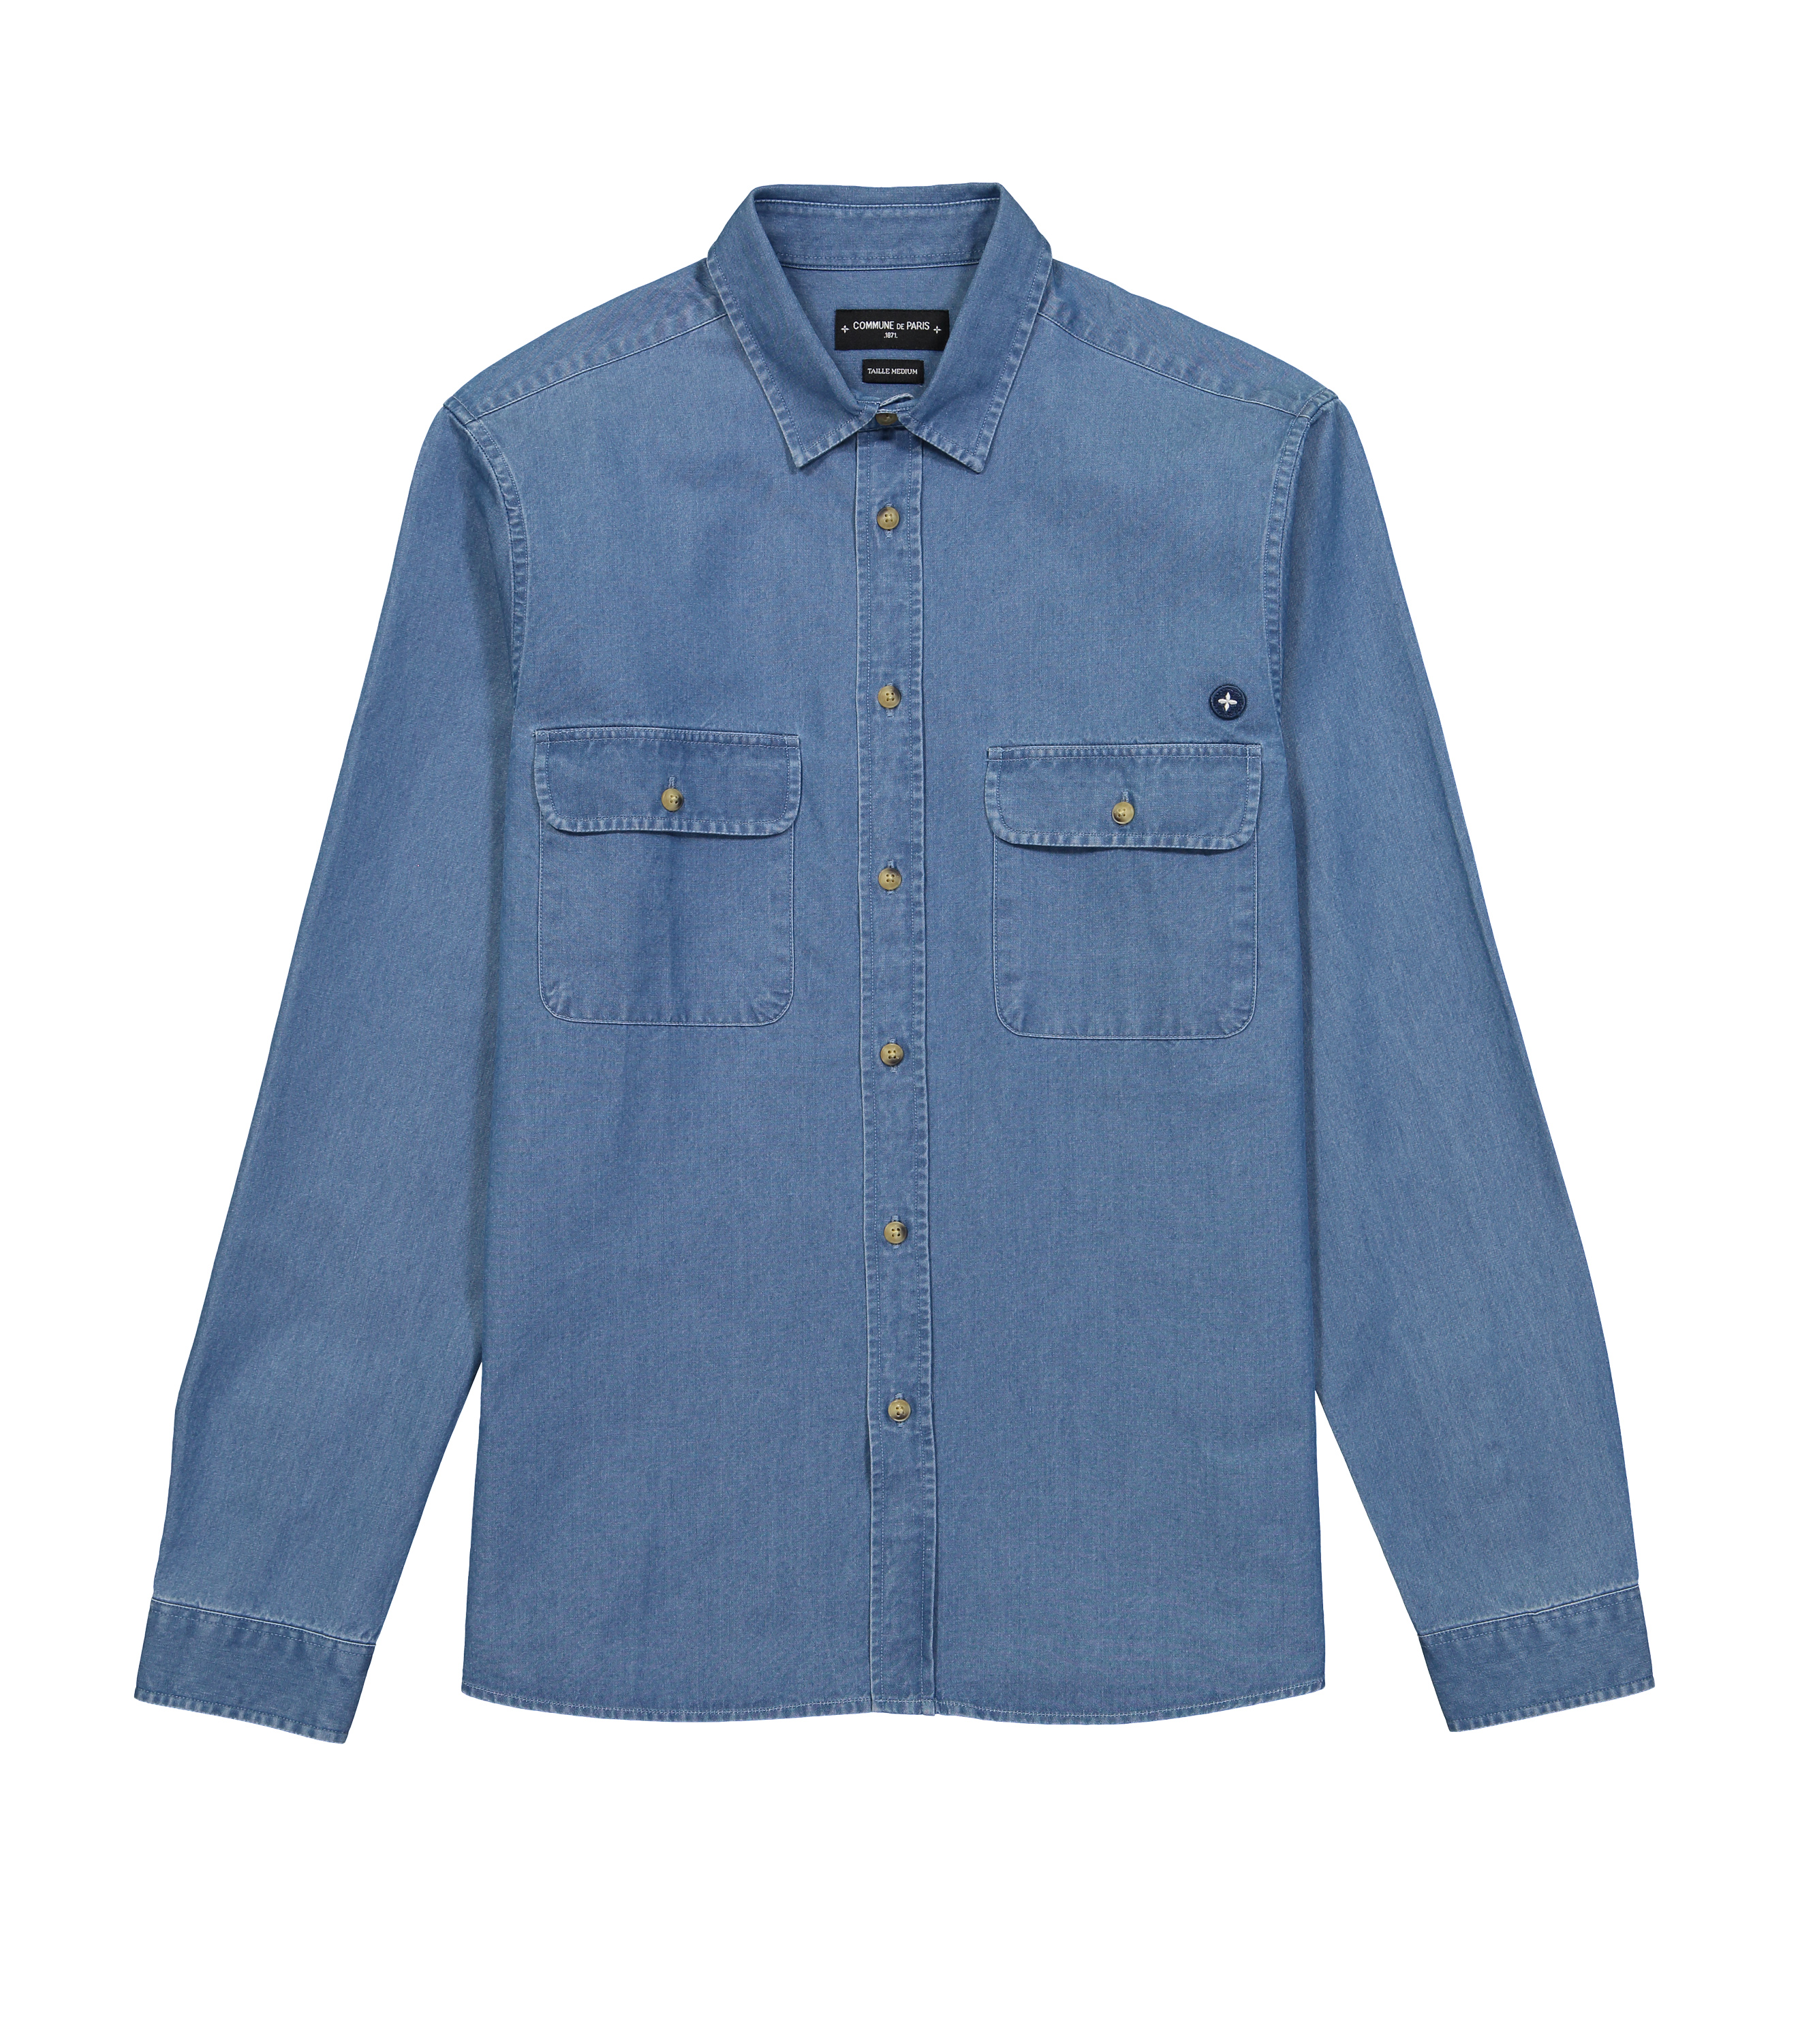 SHIRT  FERDINAND - Denim